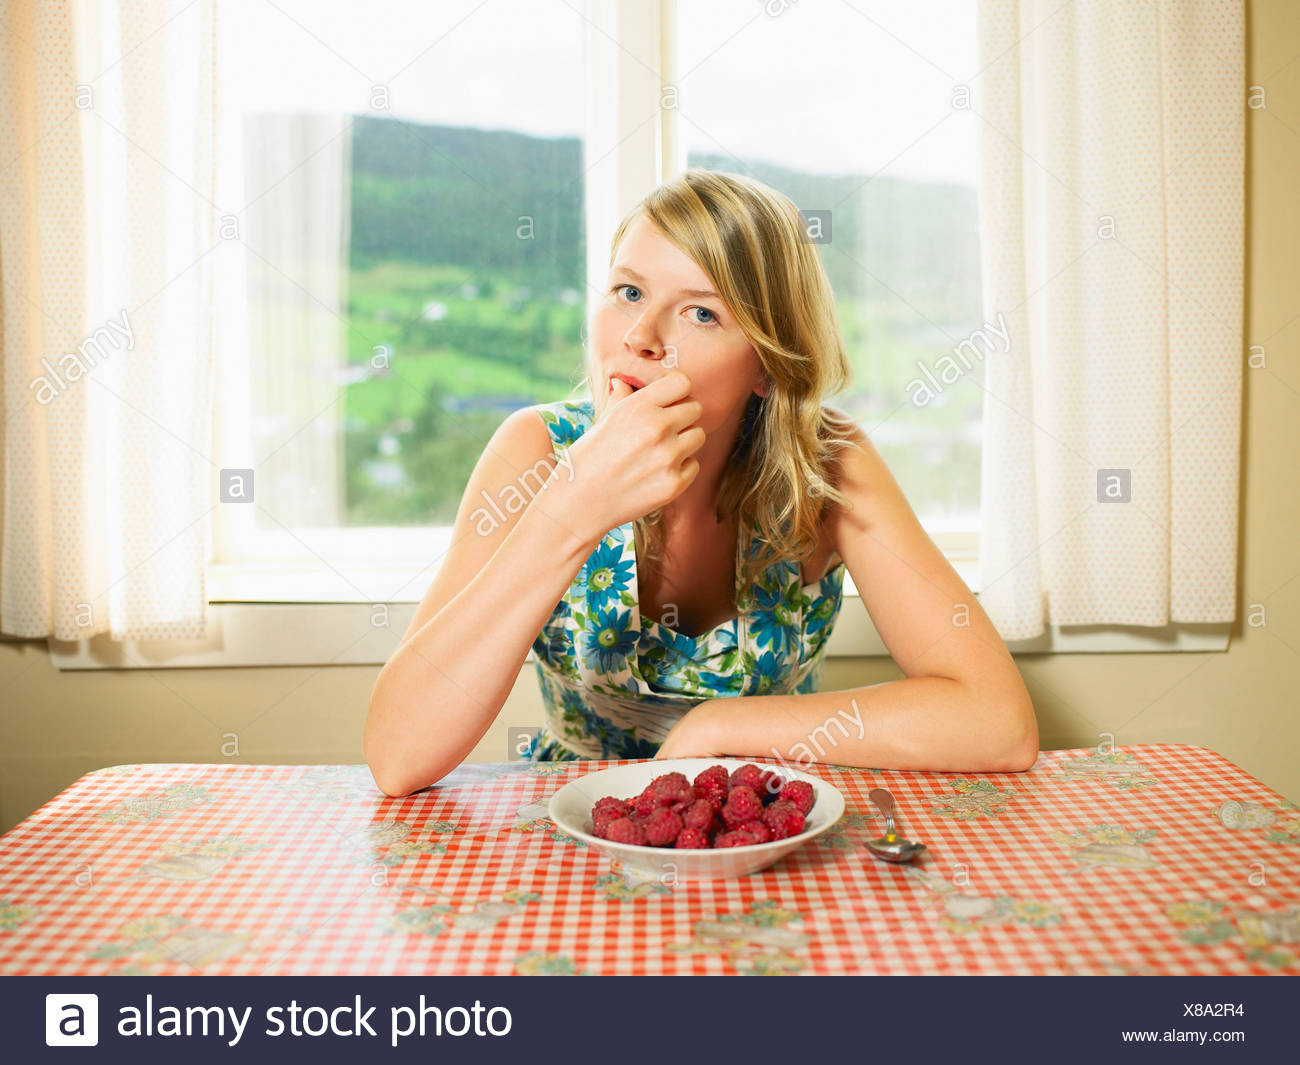 Woman eating bowl of raspberries at table. - Stock Image